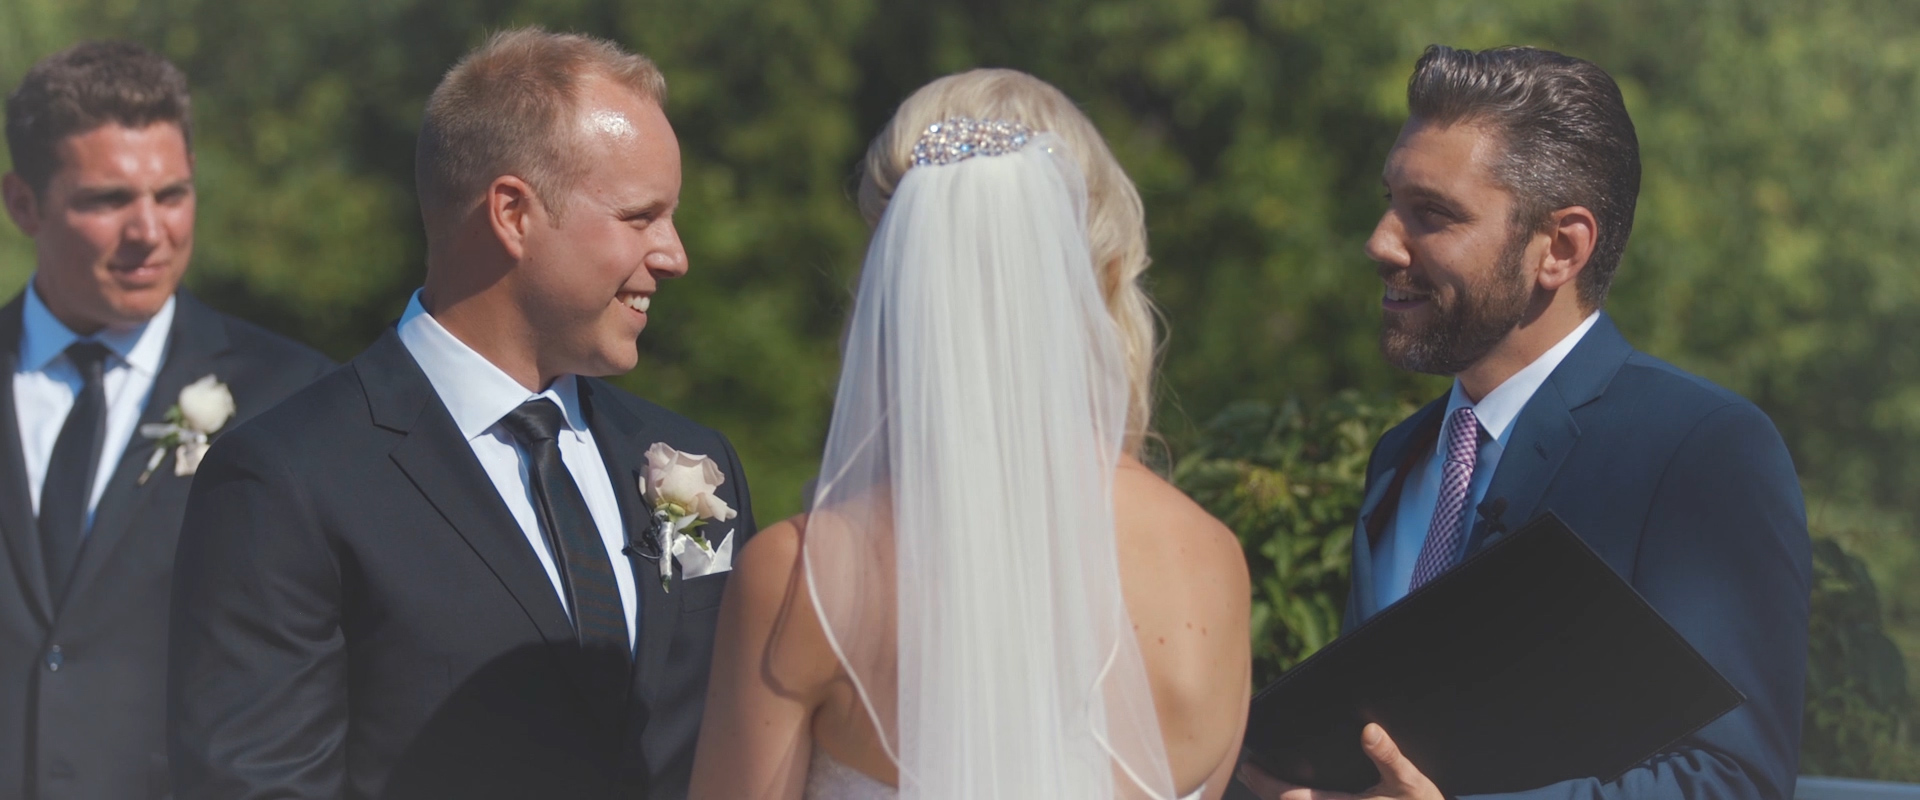 An image of a couple during their wedding ceremony at king valley golf club; taken from a Toronto Wedding Video